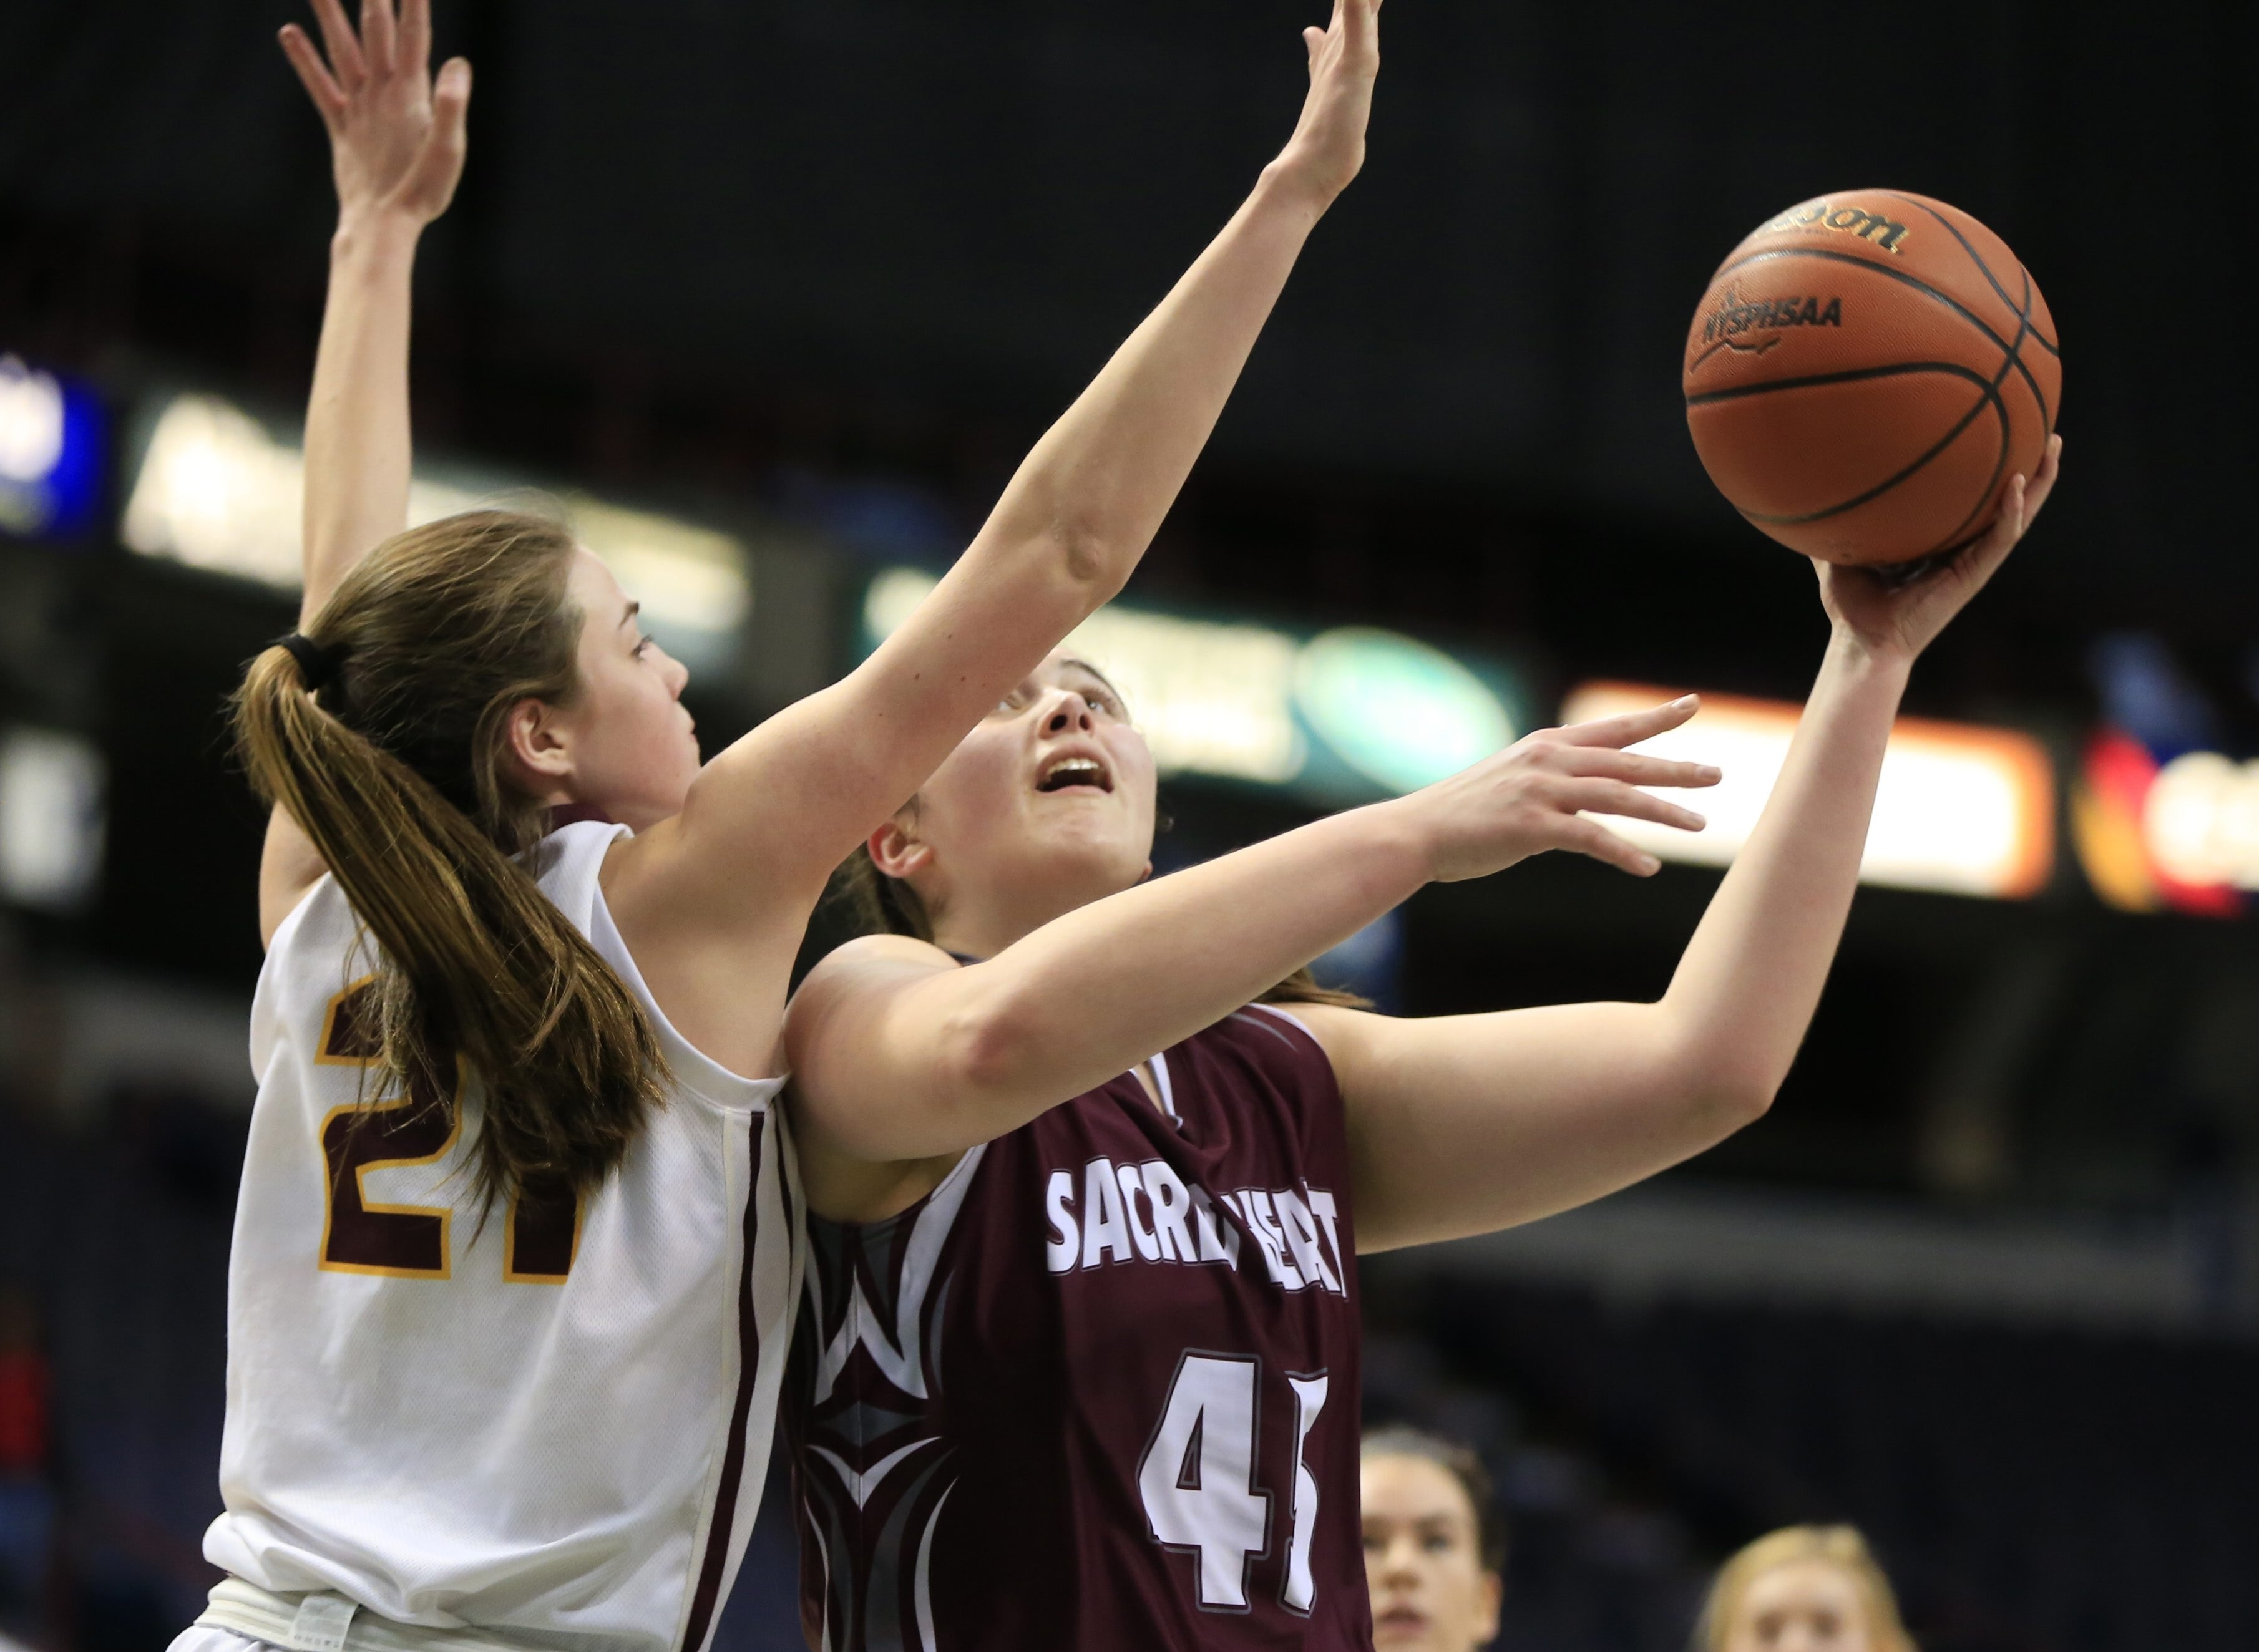 Sacred Heart's Sarah Young shoots over Staten Island Academy's Elizabeth Althoff. Young scored 13 points in her final high school game.